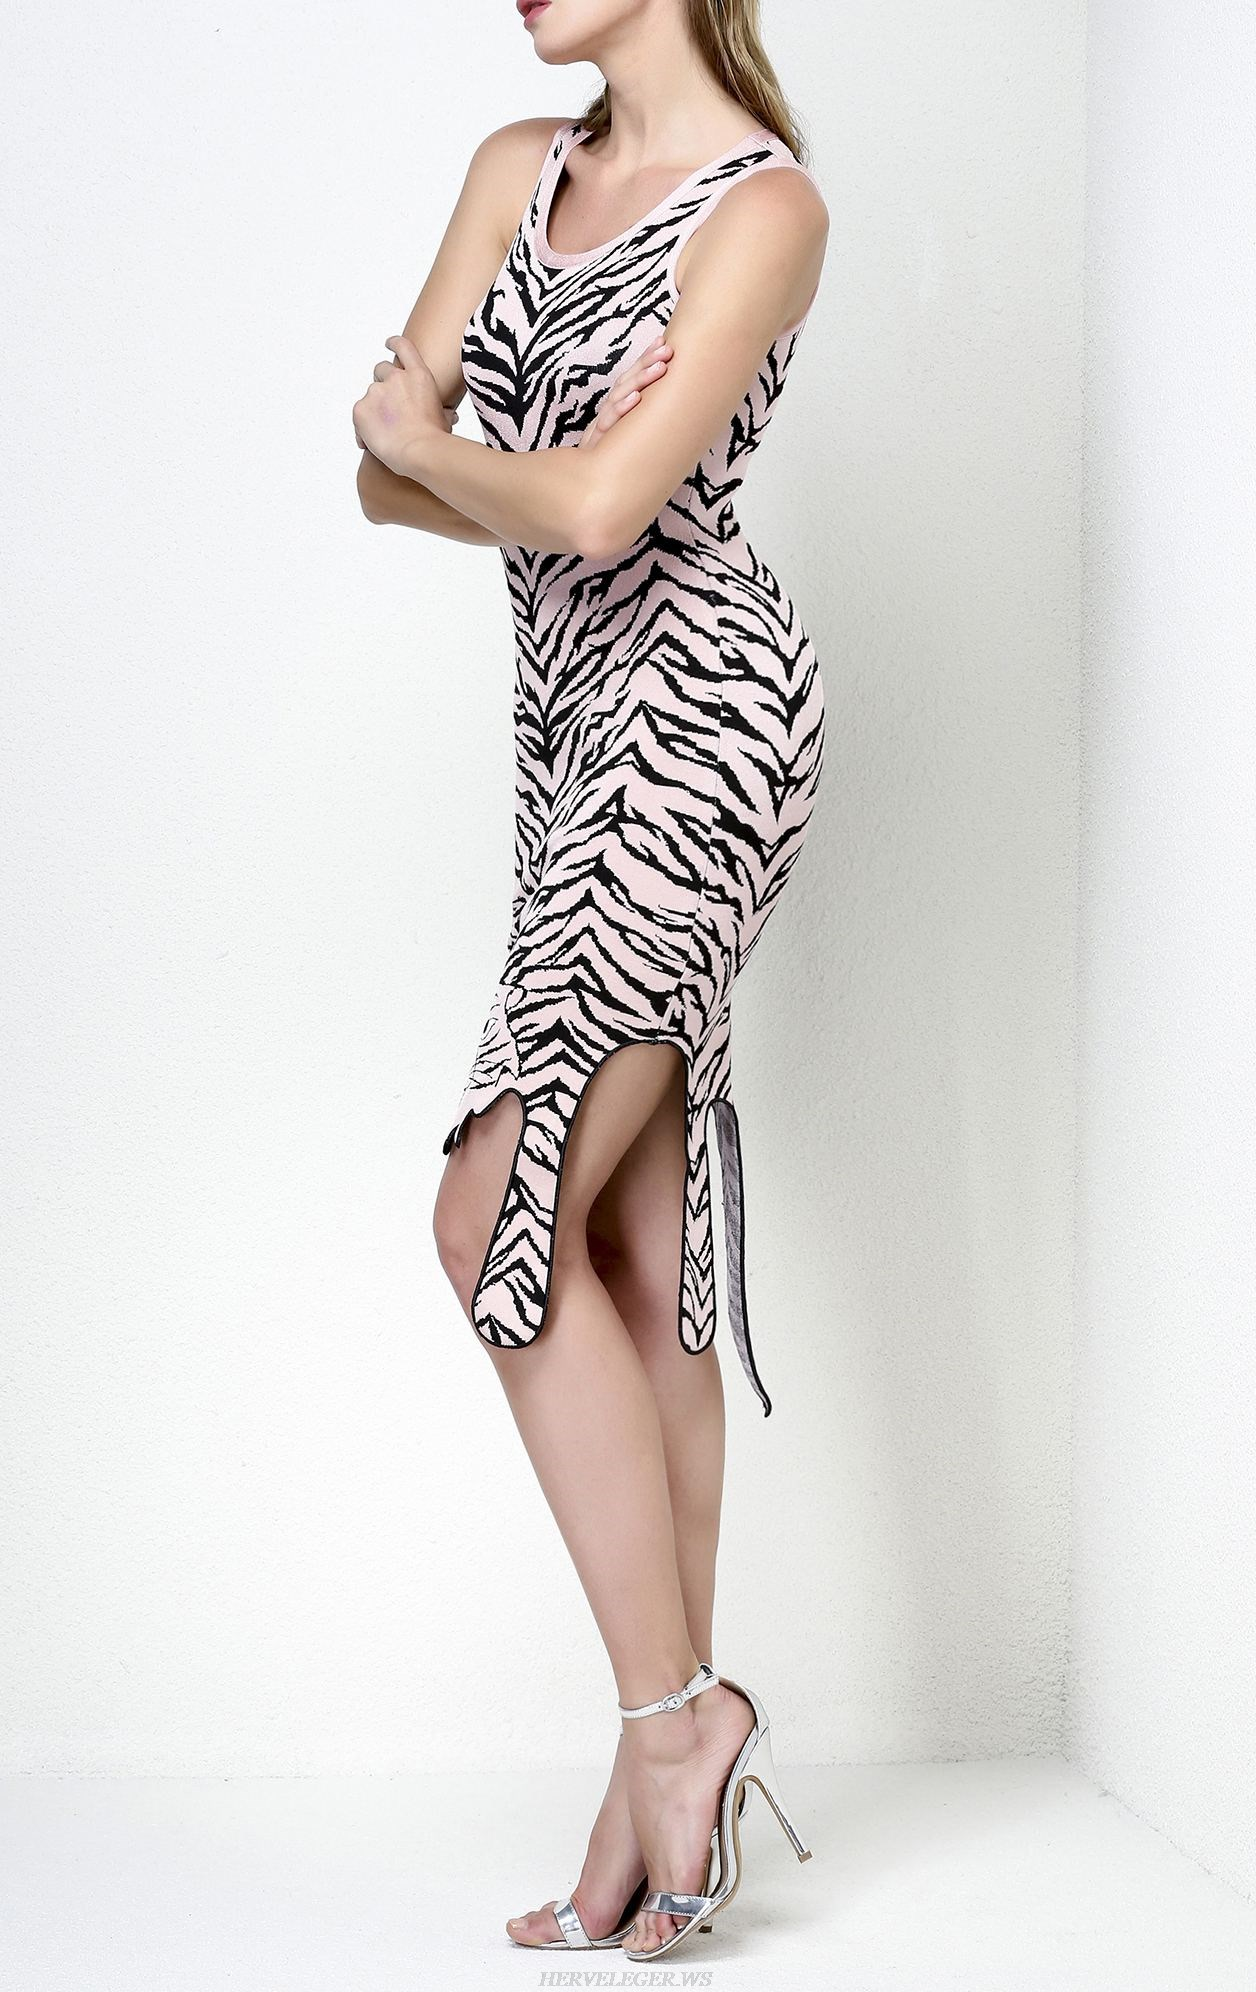 Herve Leger Tiger Print Jacquard Dress